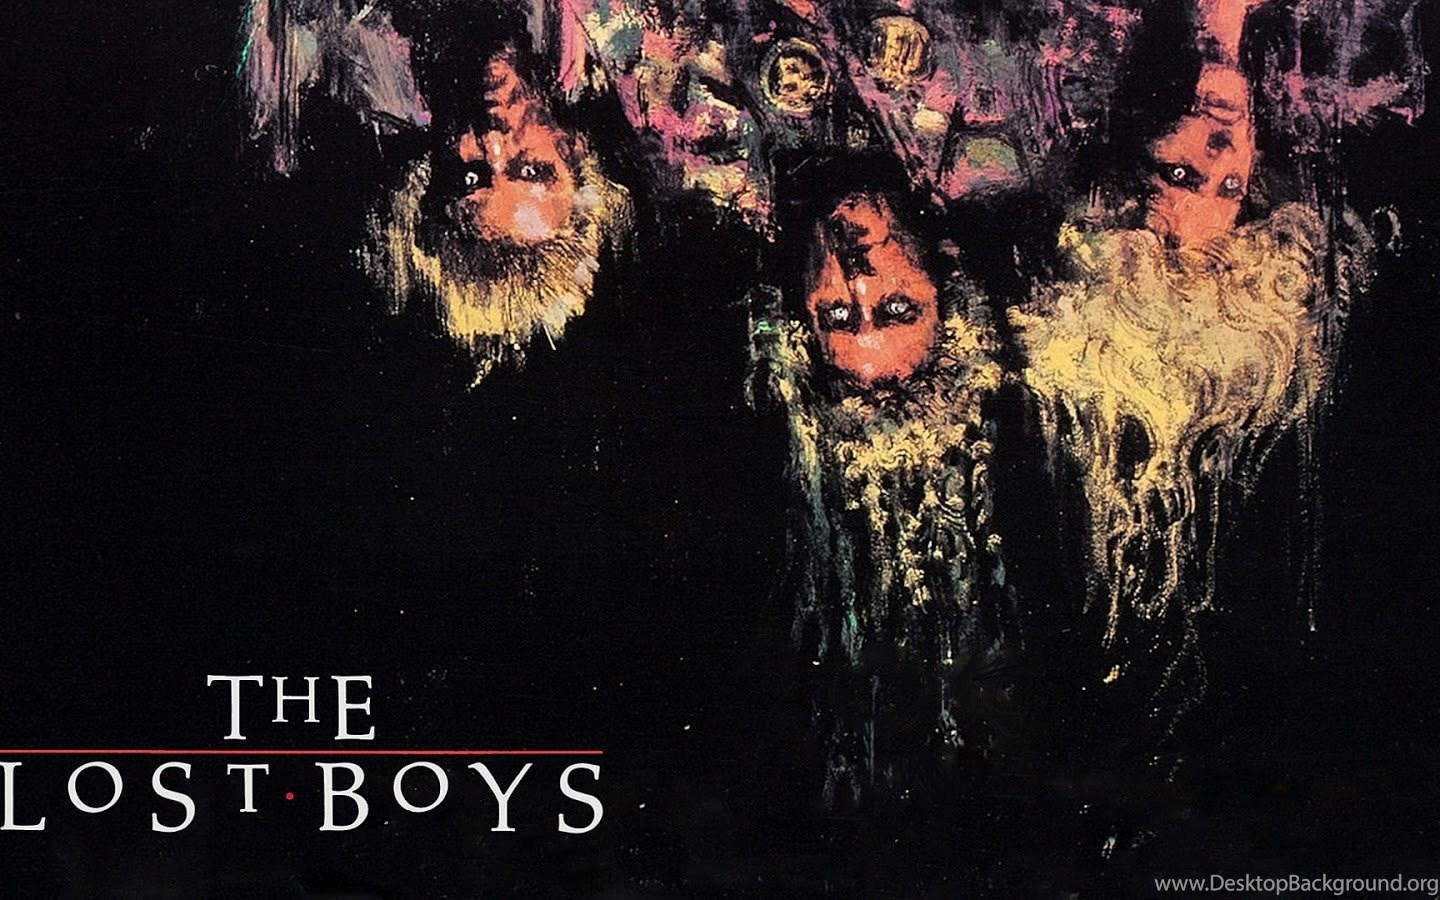 The Lost Boys Movie Wallpapers 99 images in Collection Page 2 1440x900